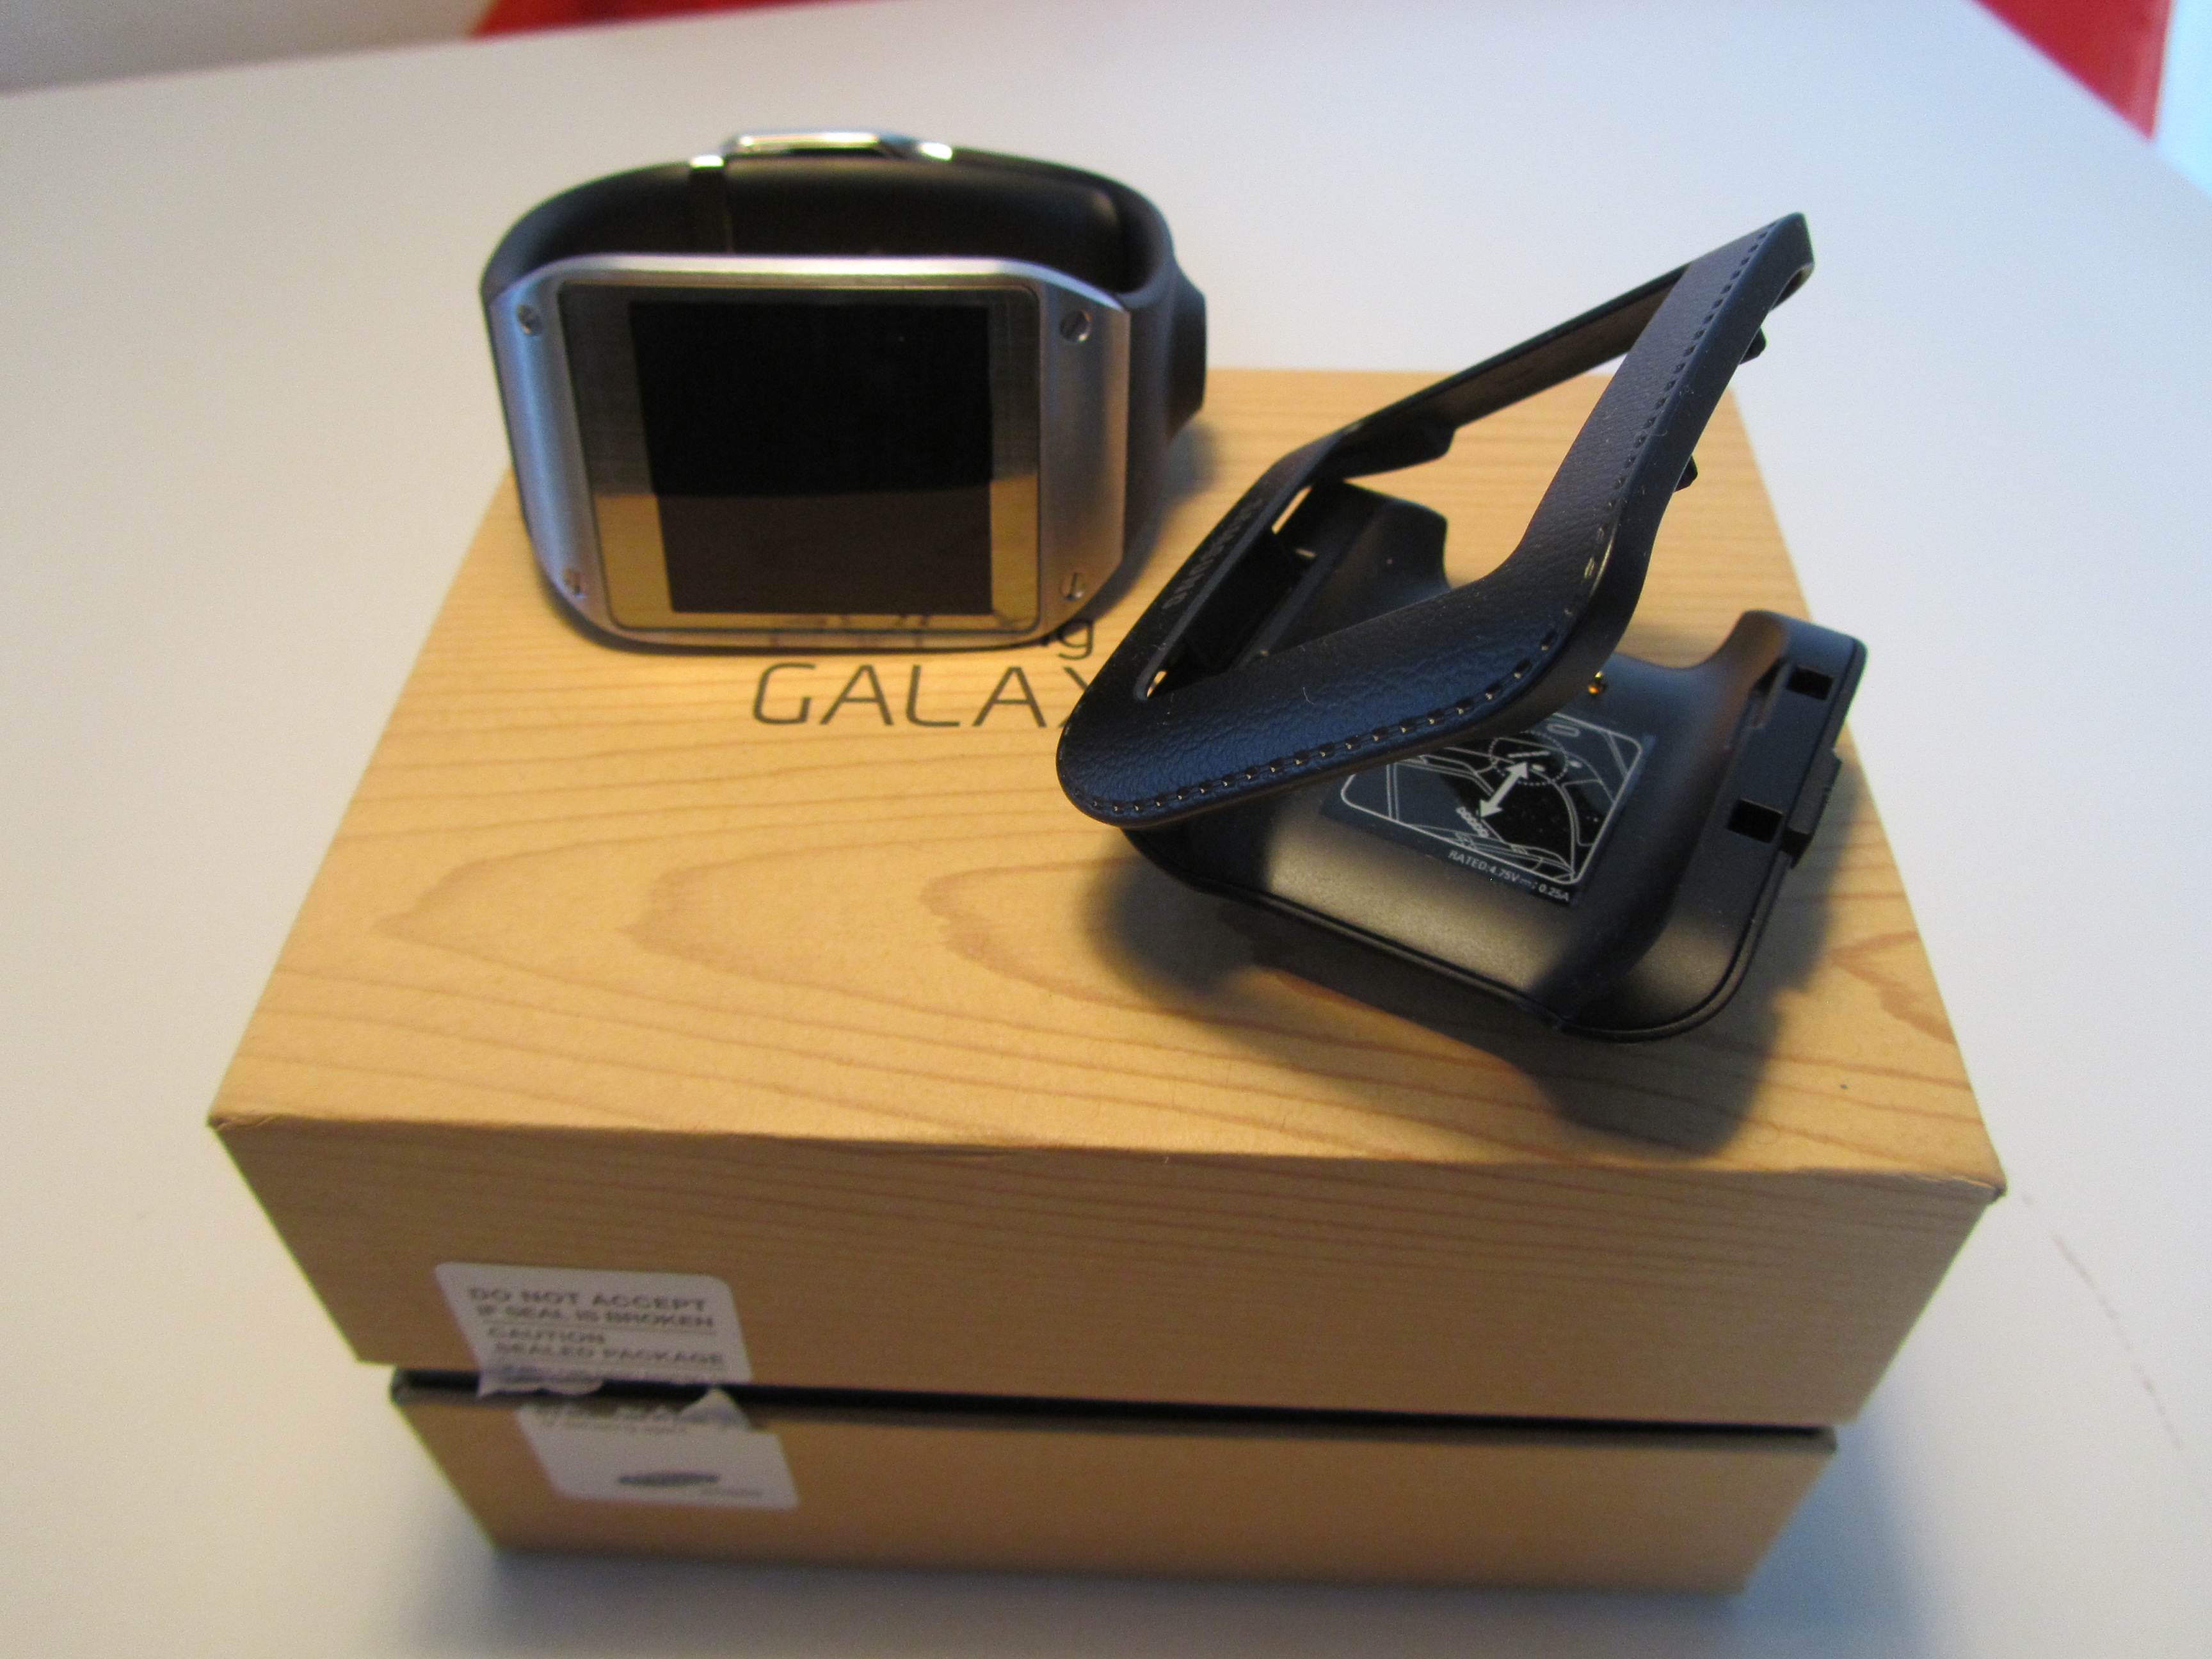 Gear cradle Samsung Galaxy Gear review: A $299 smartwatch that can't send an email…but I hated taking it off